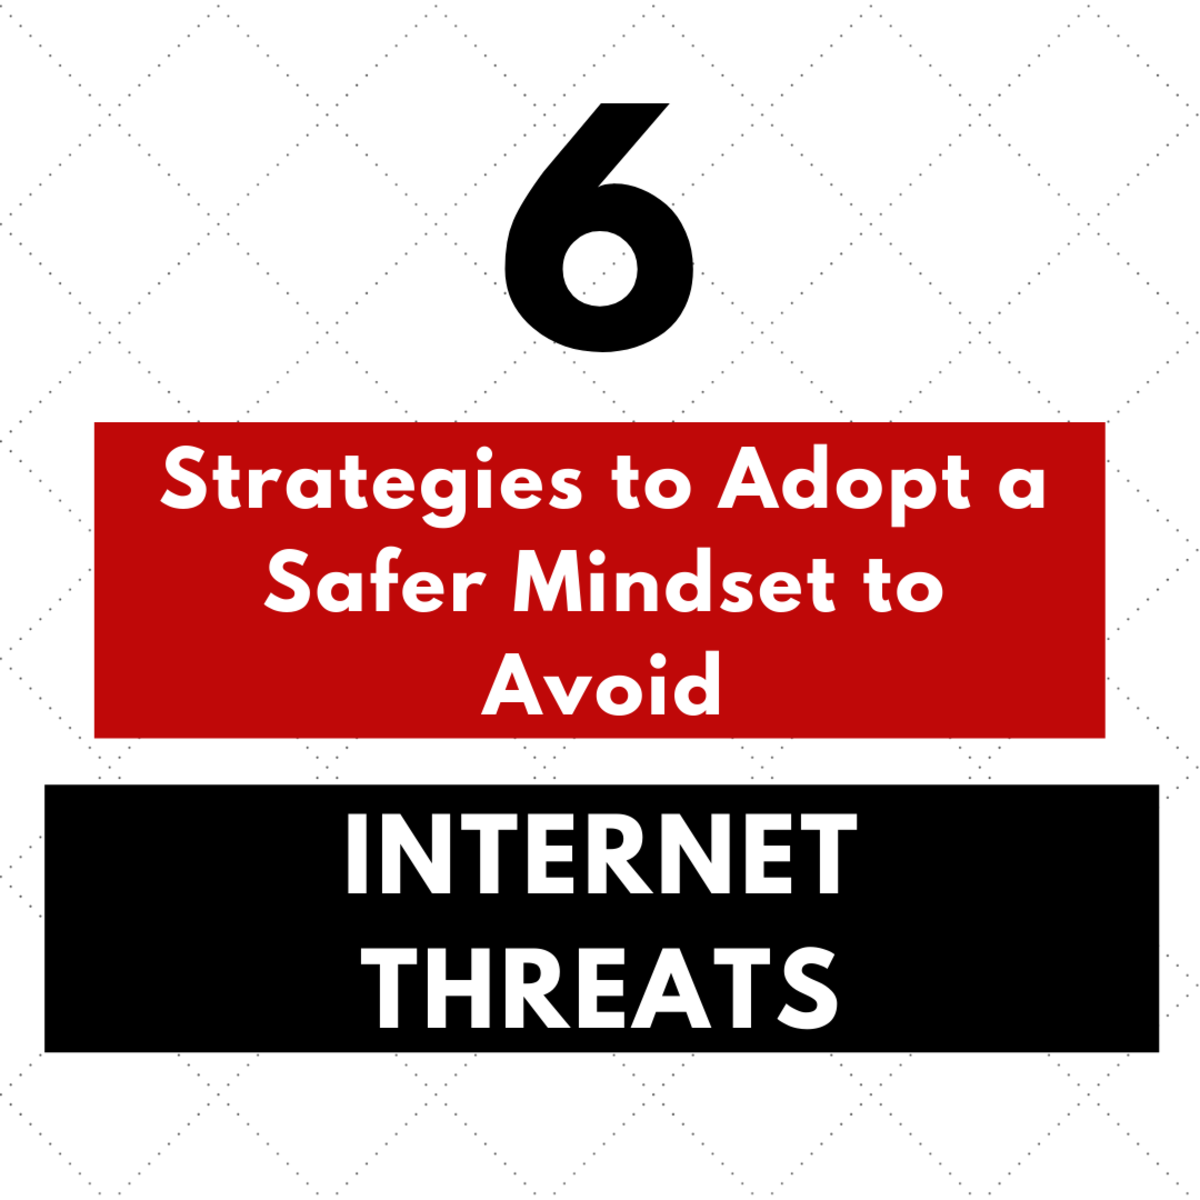 How to adopt a safer mindset to avoid internet threats